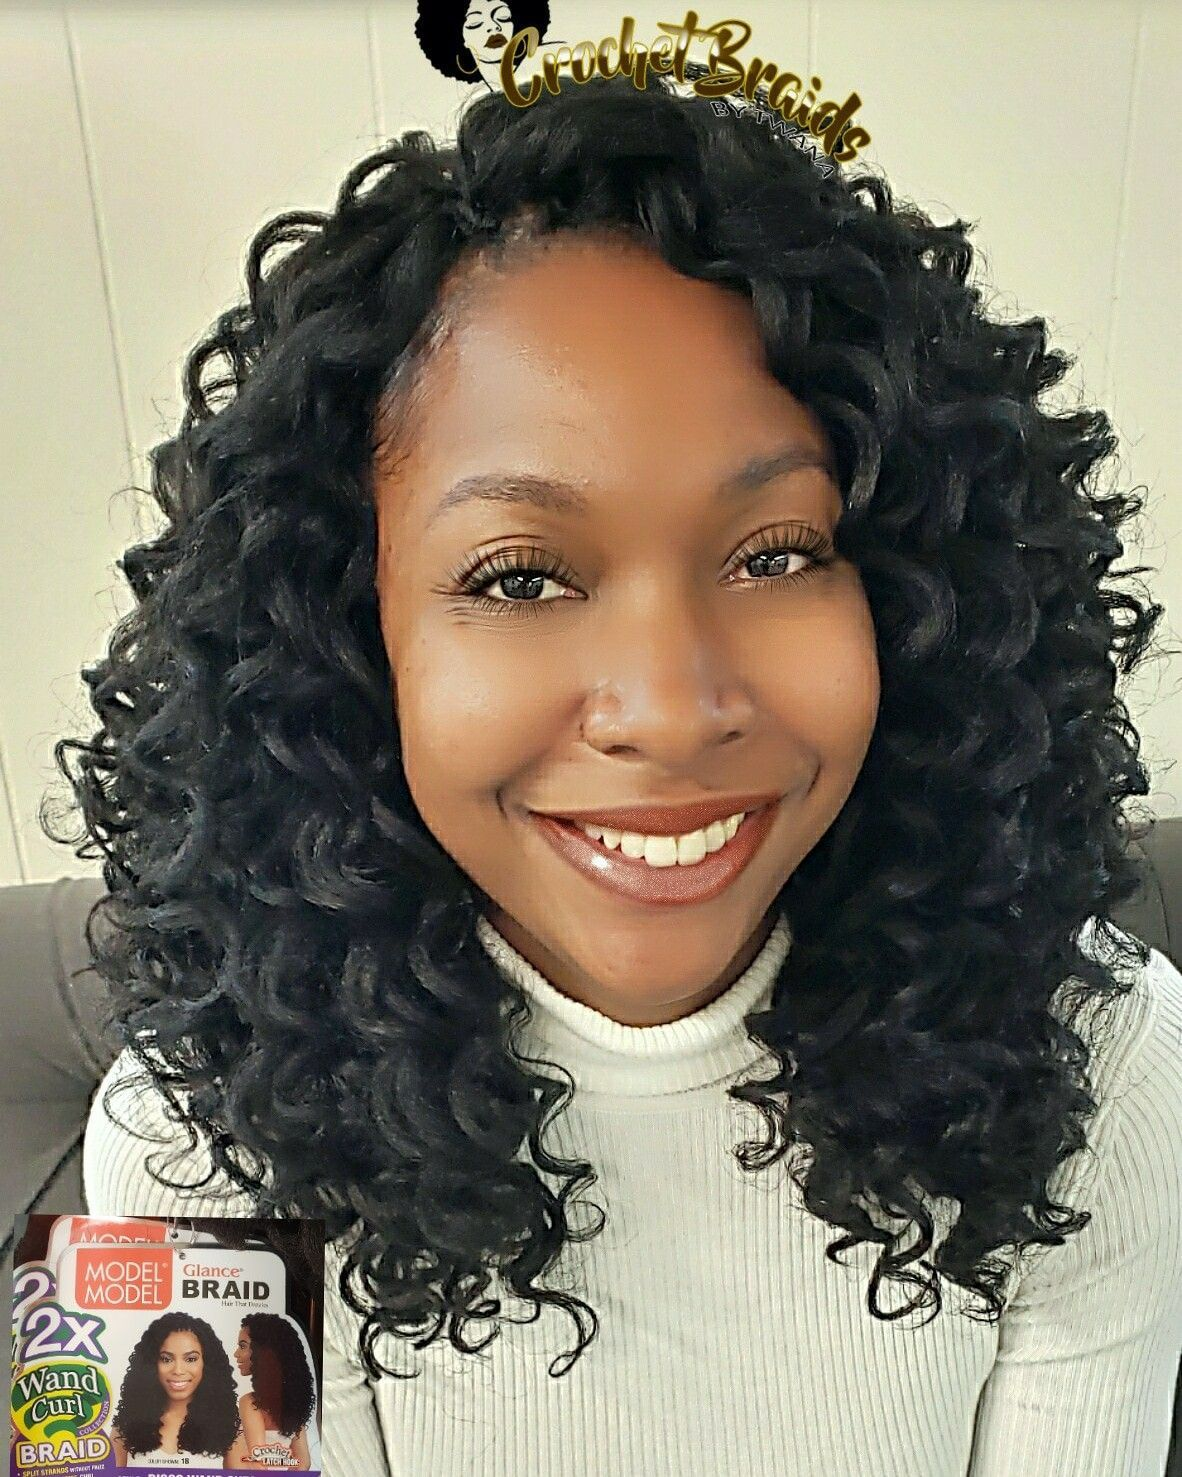 Crochet Braids featuring Model Model Glance 2x Disco Wand Curl. 2.5 packs used. This is big hair. If you don't like volume, this is not for you. #bighairdontcare #wandcurl #discowandcurl #modelmodel #glance #crochetbraidsbytwana #crochetbraids #vacrochetbraids #fredericksburgva #delmarvacrochet #dmvcrochetbraids #fredericksburgcrochetbraids www.crochetbraidsbytwana.com #crochetbraids